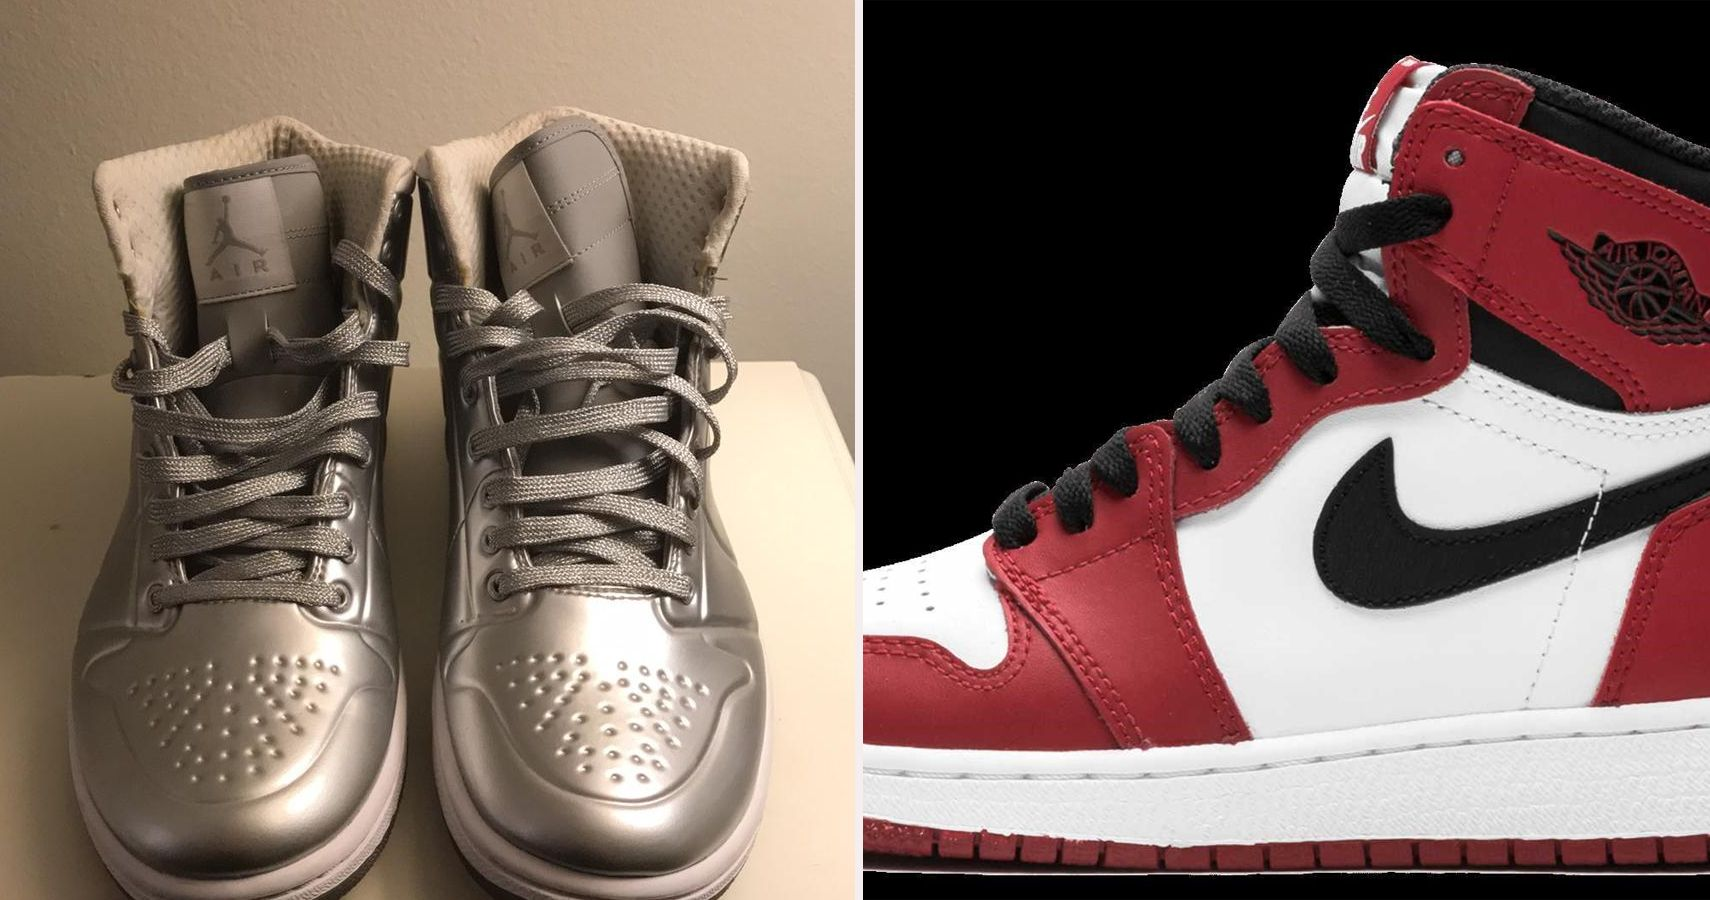 10 Most Valuable Air Jordans Ever Made | TheRichest